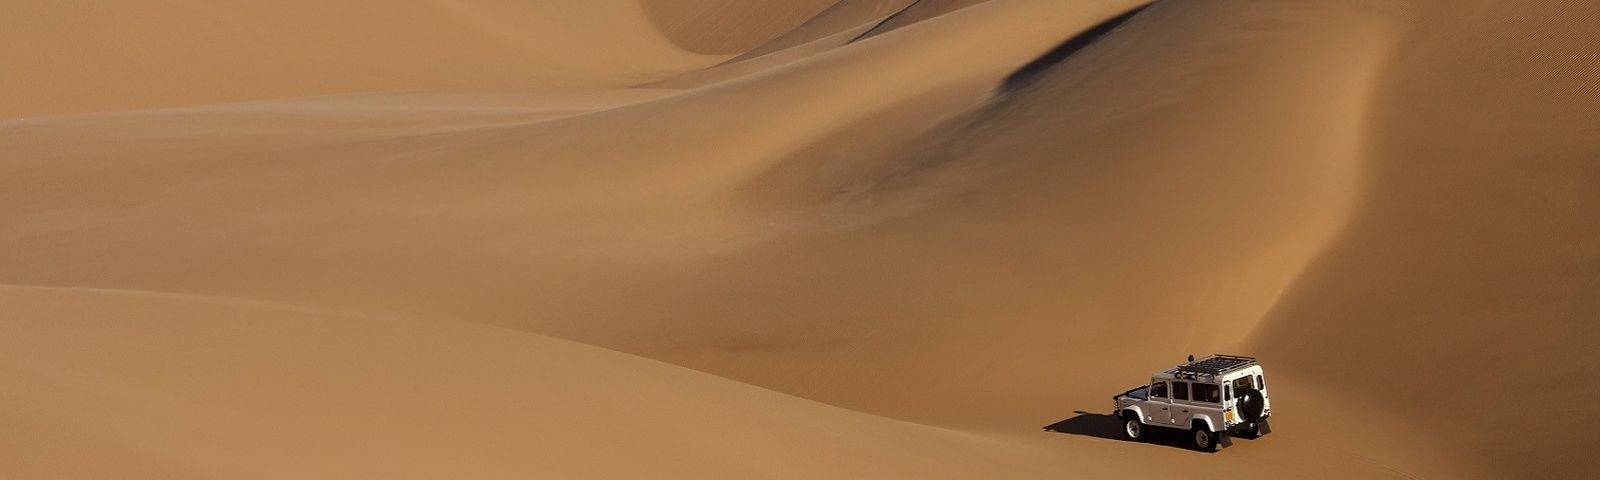 Namibia Travel safety: Driving in the desert landscape